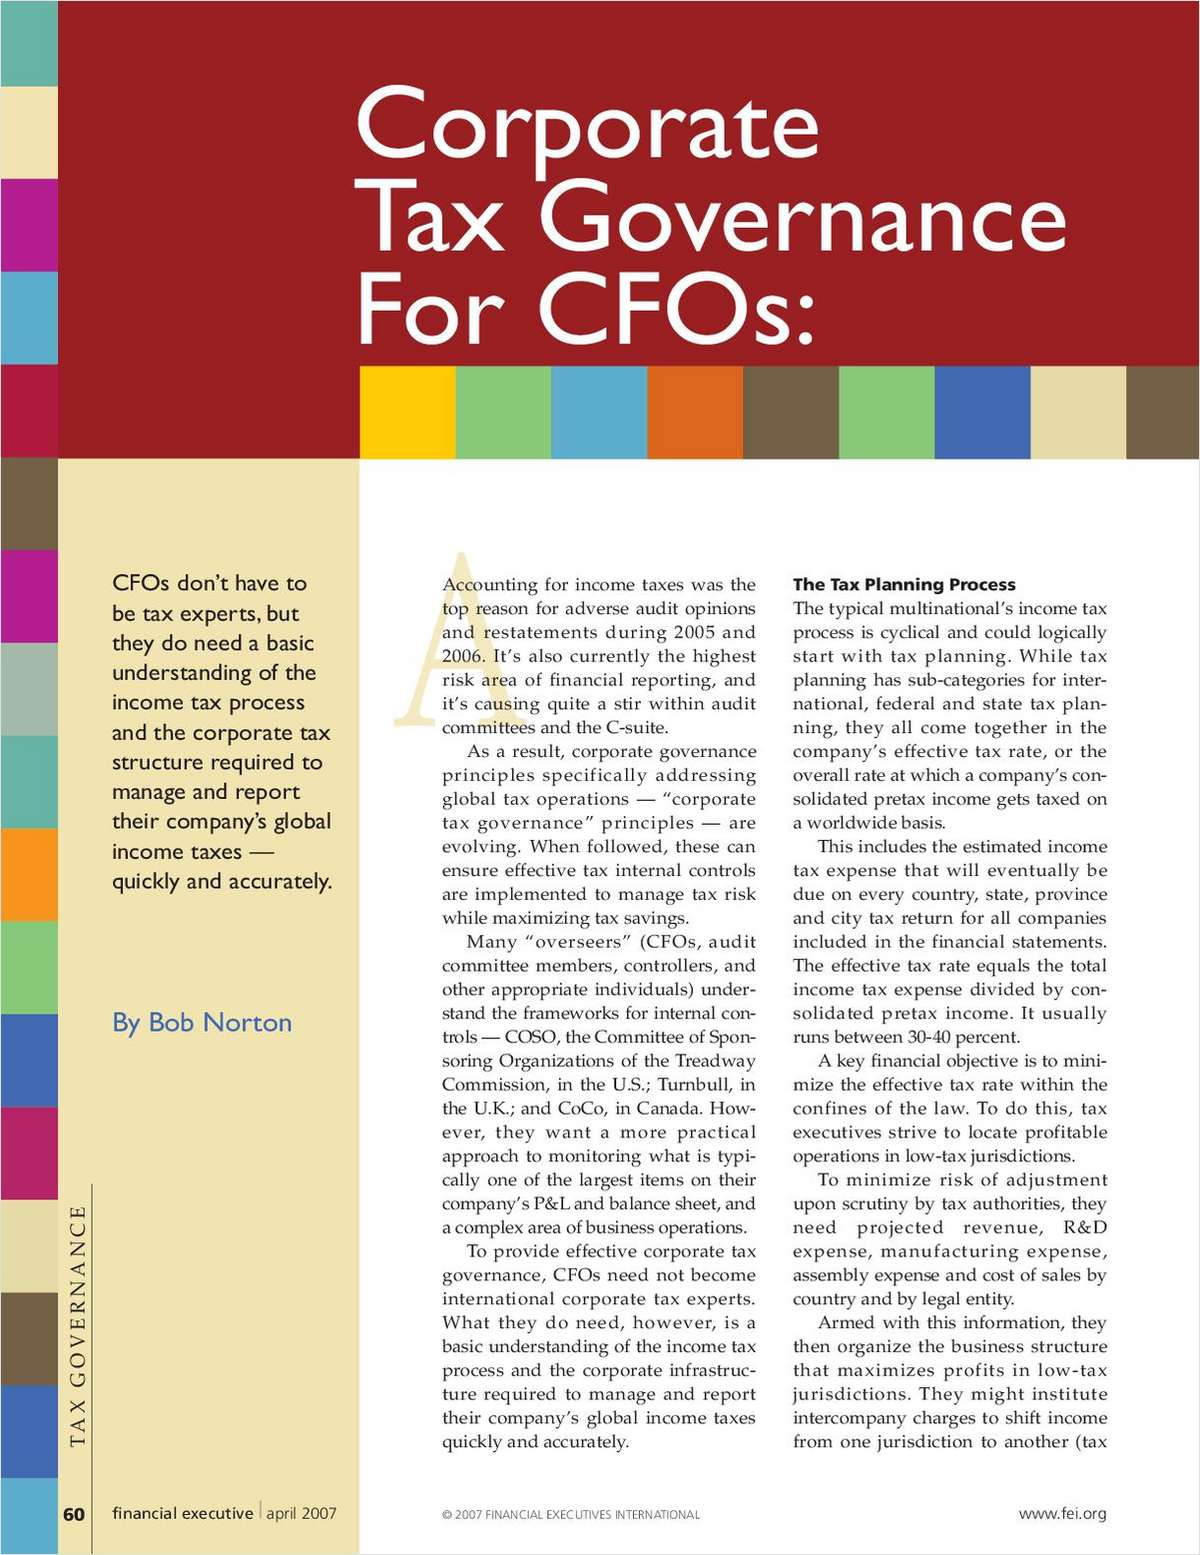 Corporate Tax Governance For CFOs